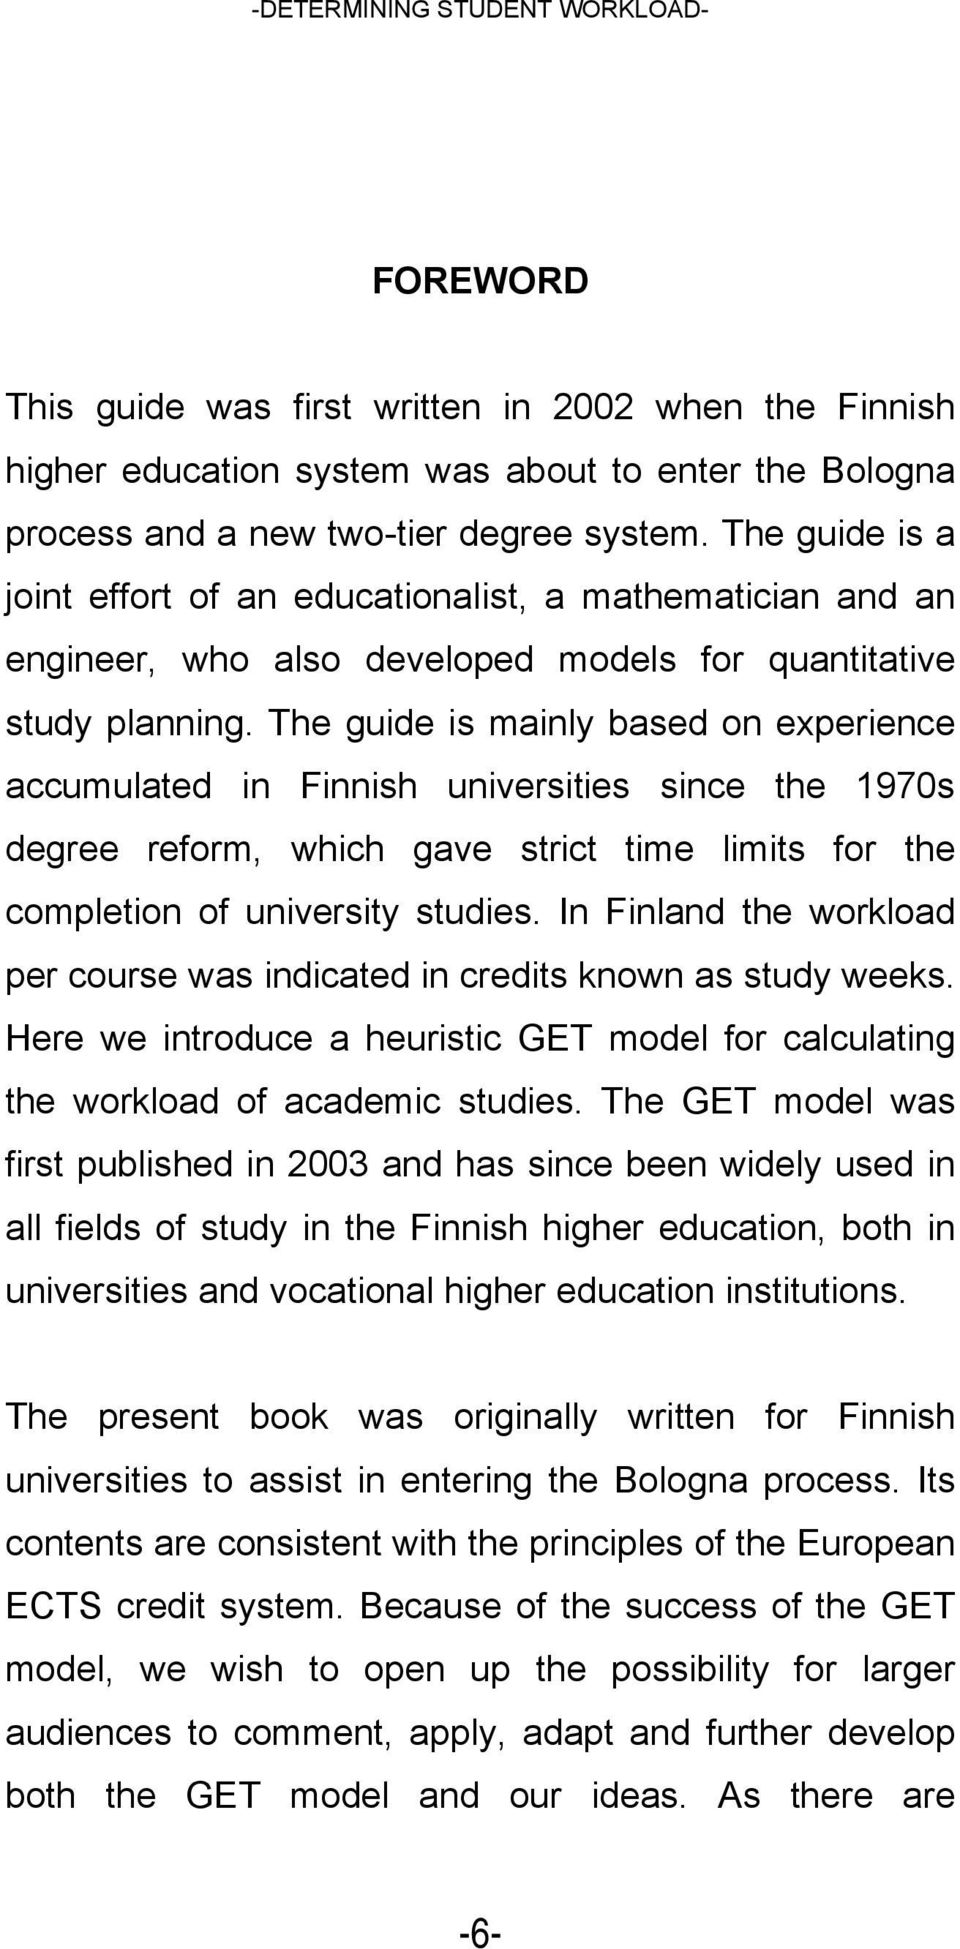 The guide is mainly based on experience accumulated in Finnish universities since the 1970s degree reform, which gave strict time limits for the completion of university studies.